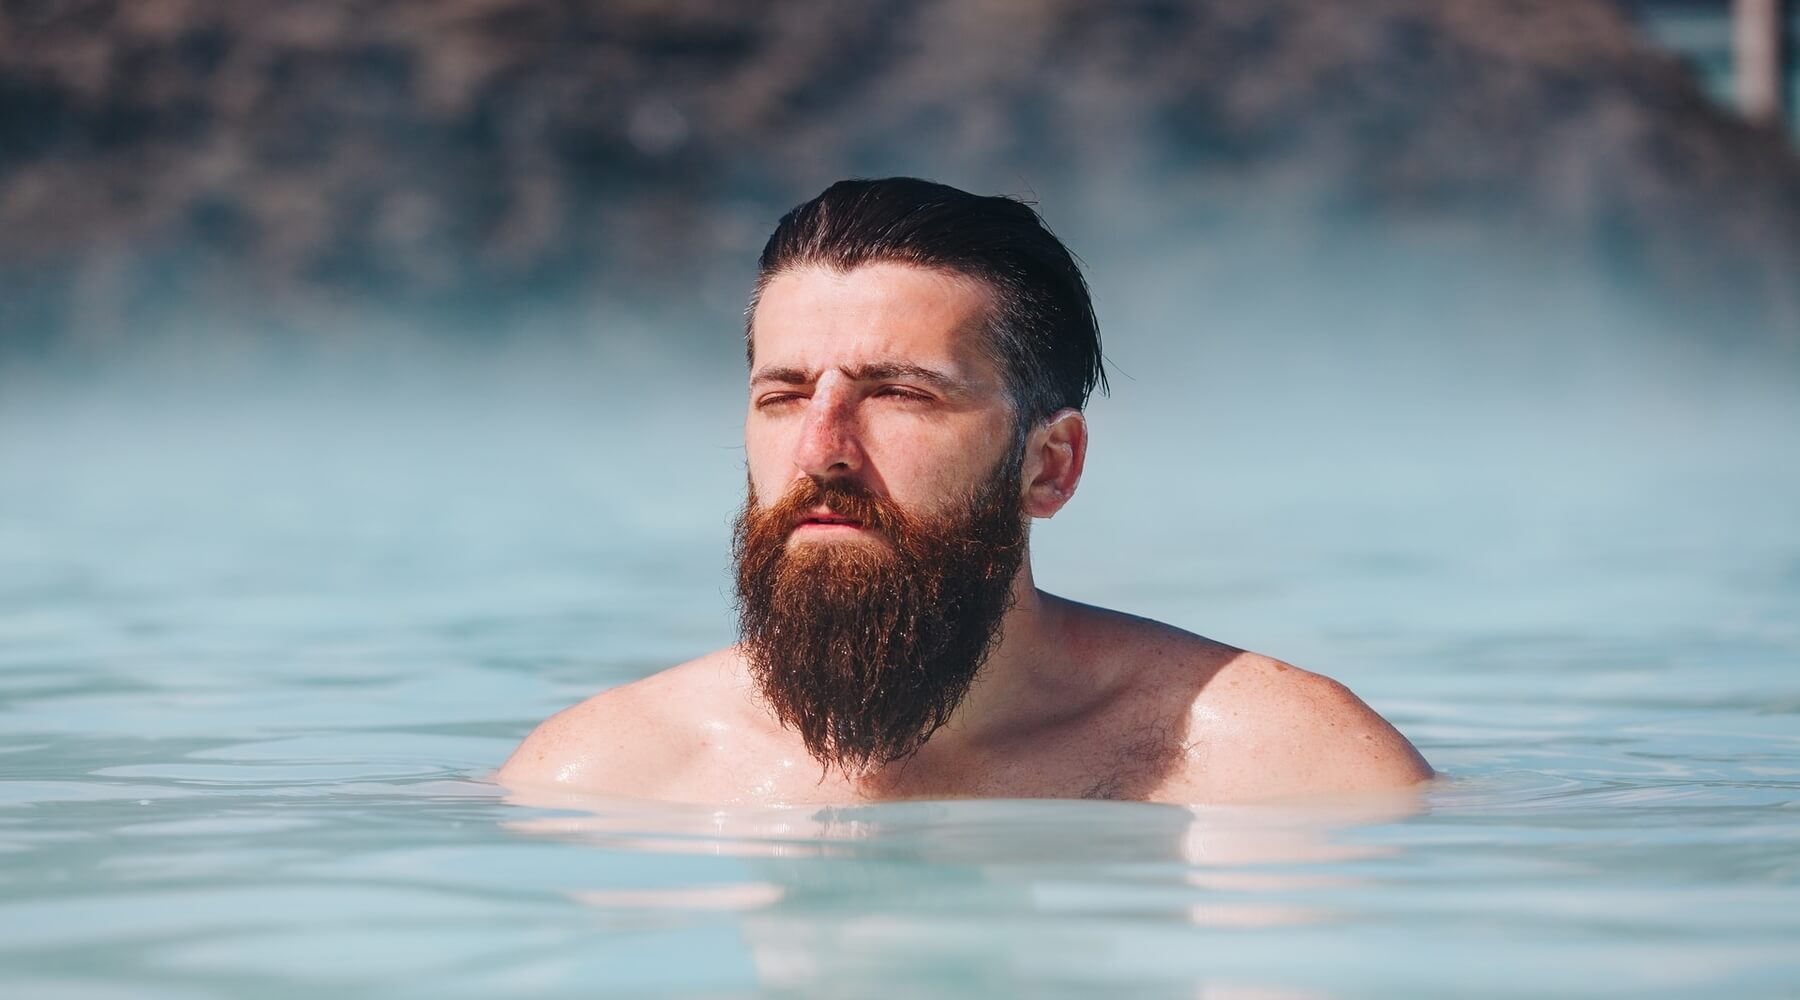 A Viking with a full beard in a hot spring